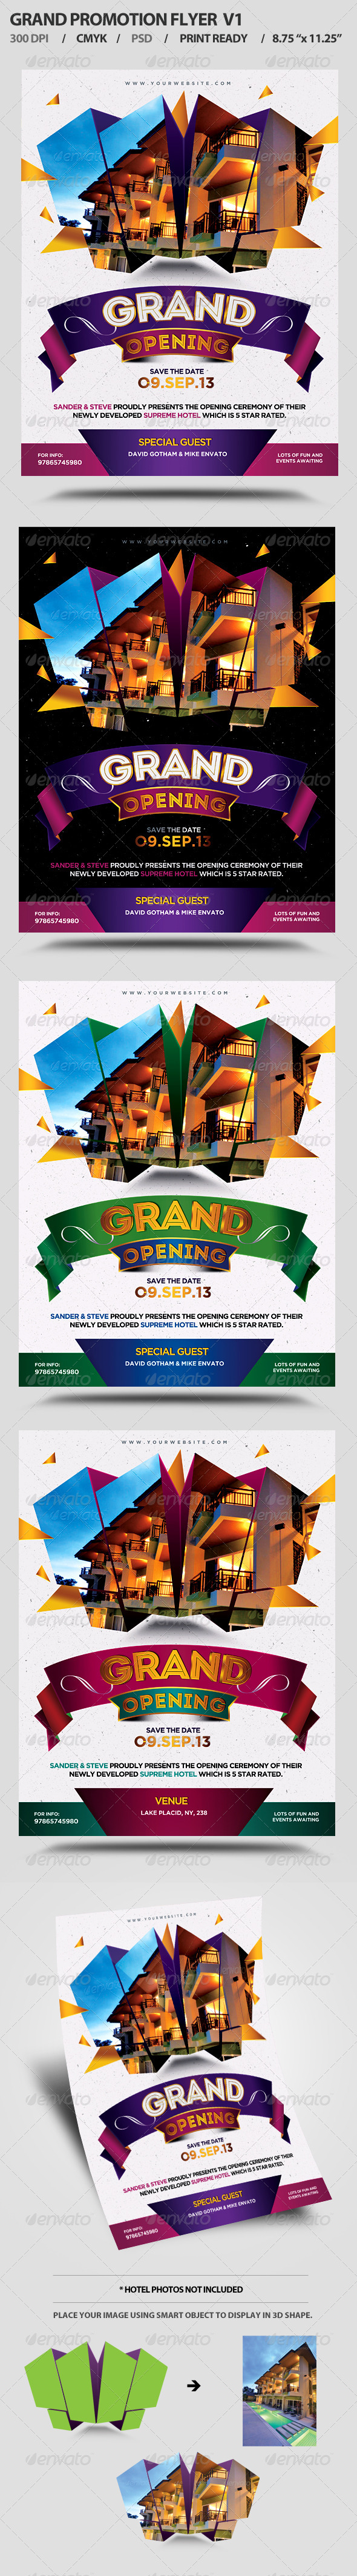 Grand Opening Event Flyer V1 - Events Flyers